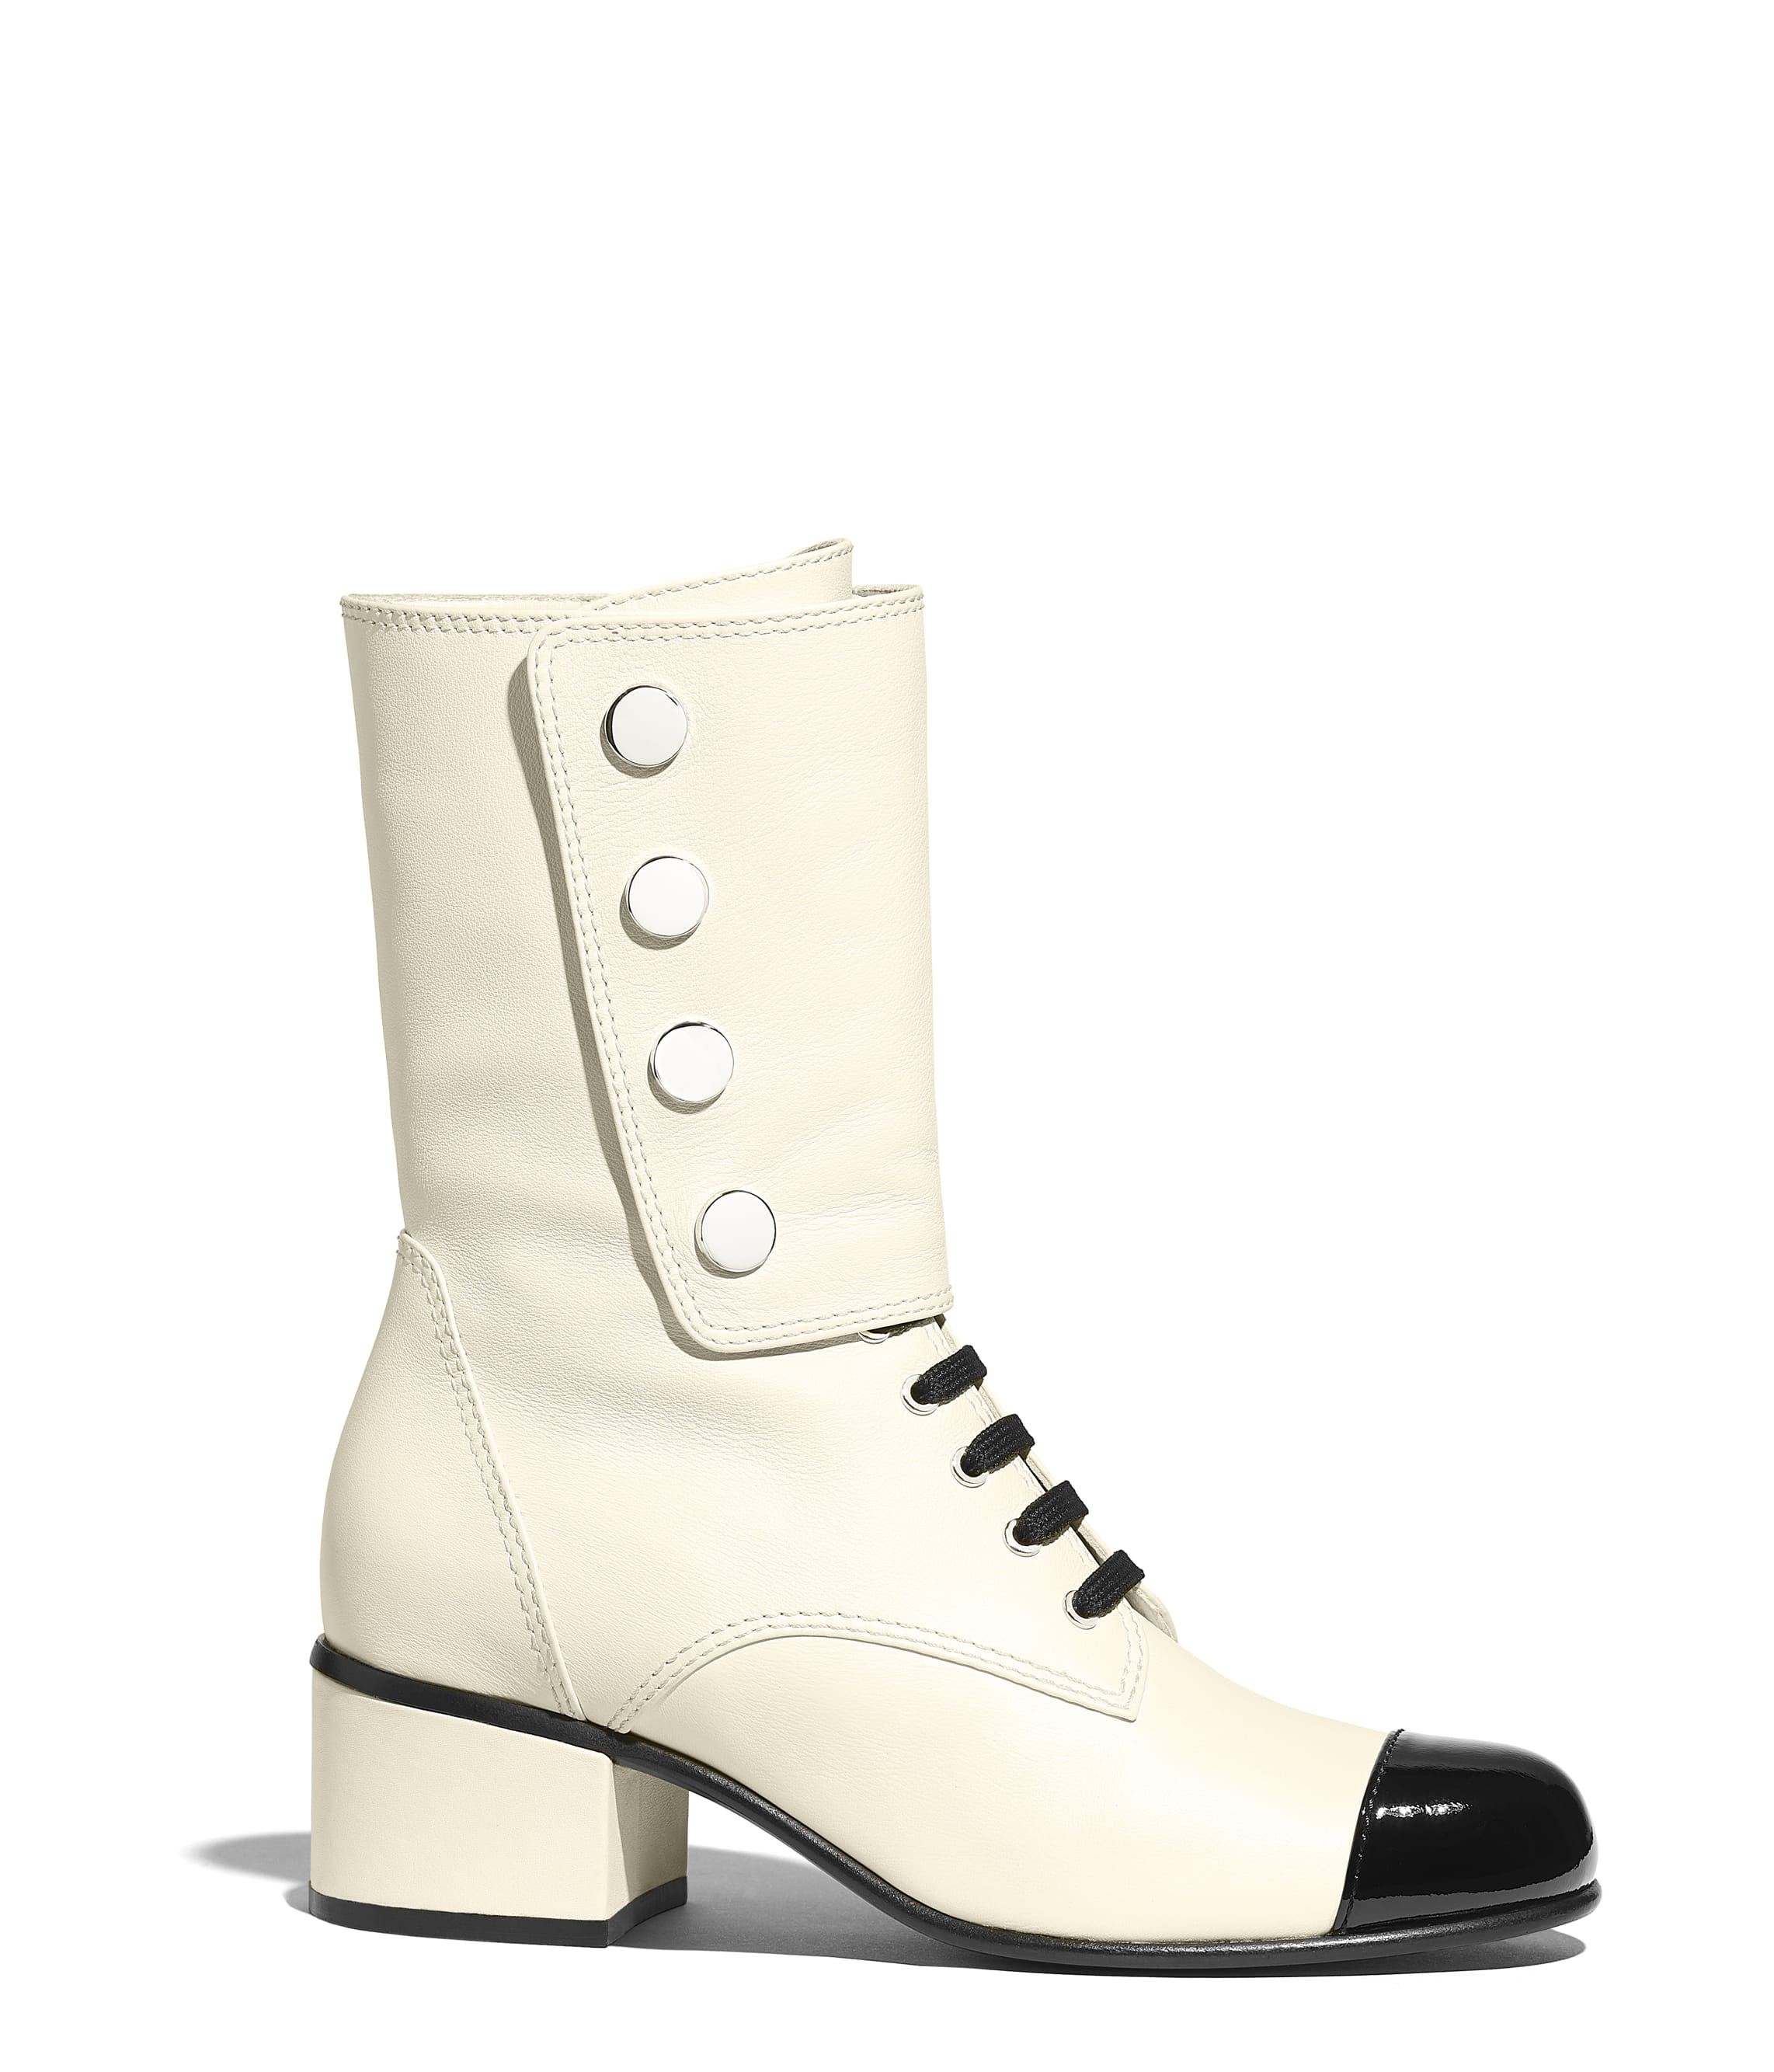 5950d9ee13a2b Short Boots - Shoes - CHANEL